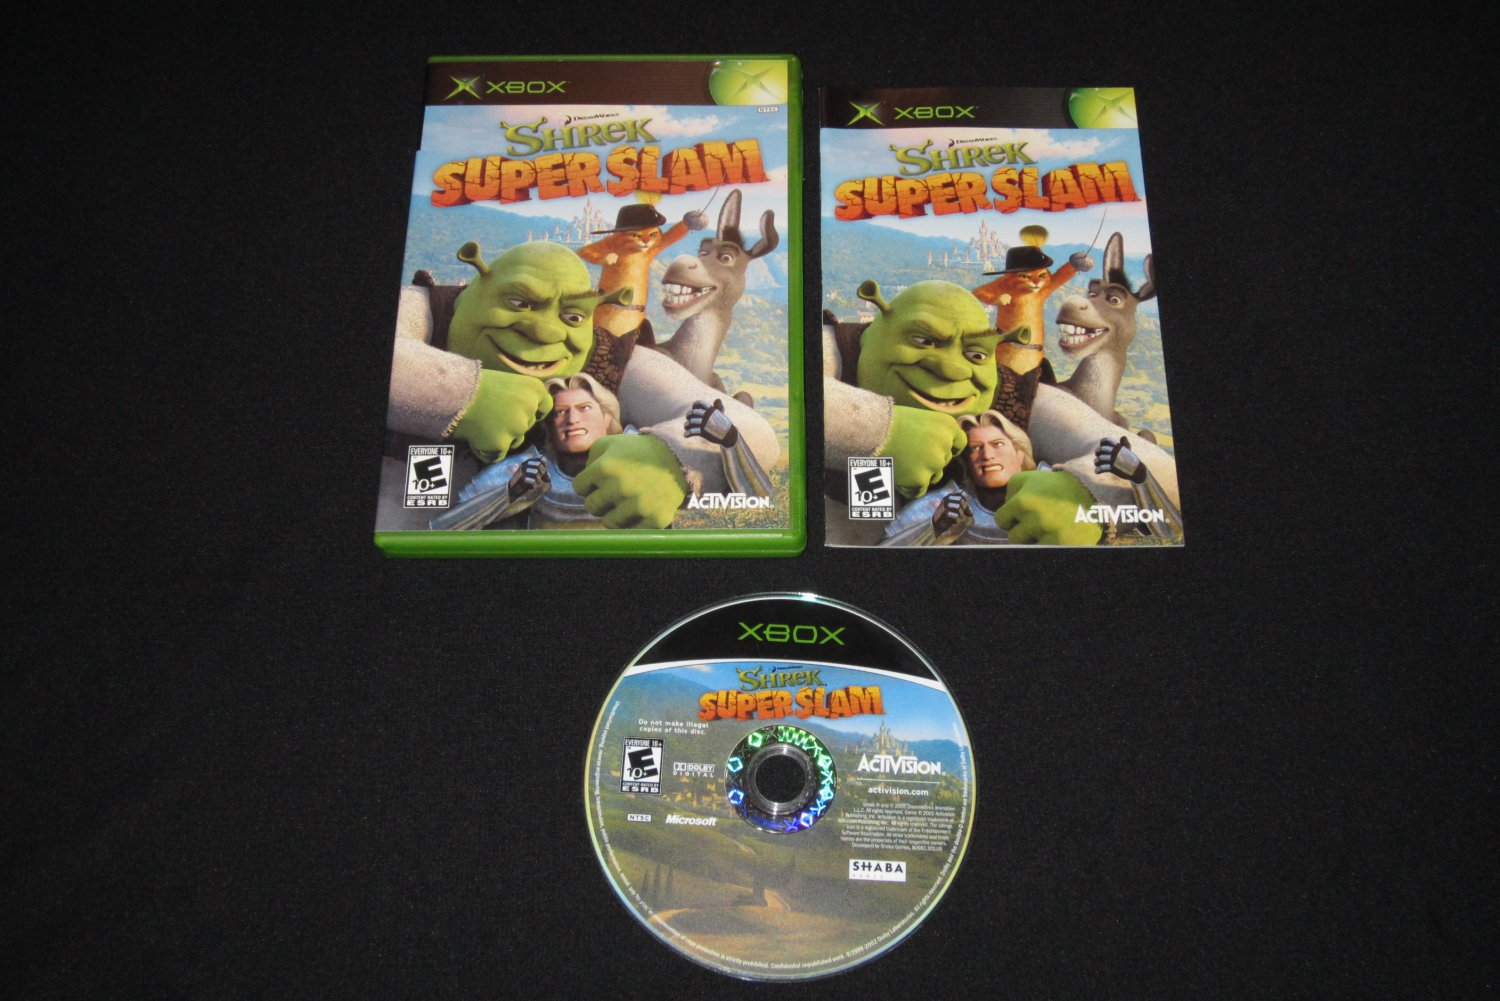 Shrek SuperSlam (Xbox)